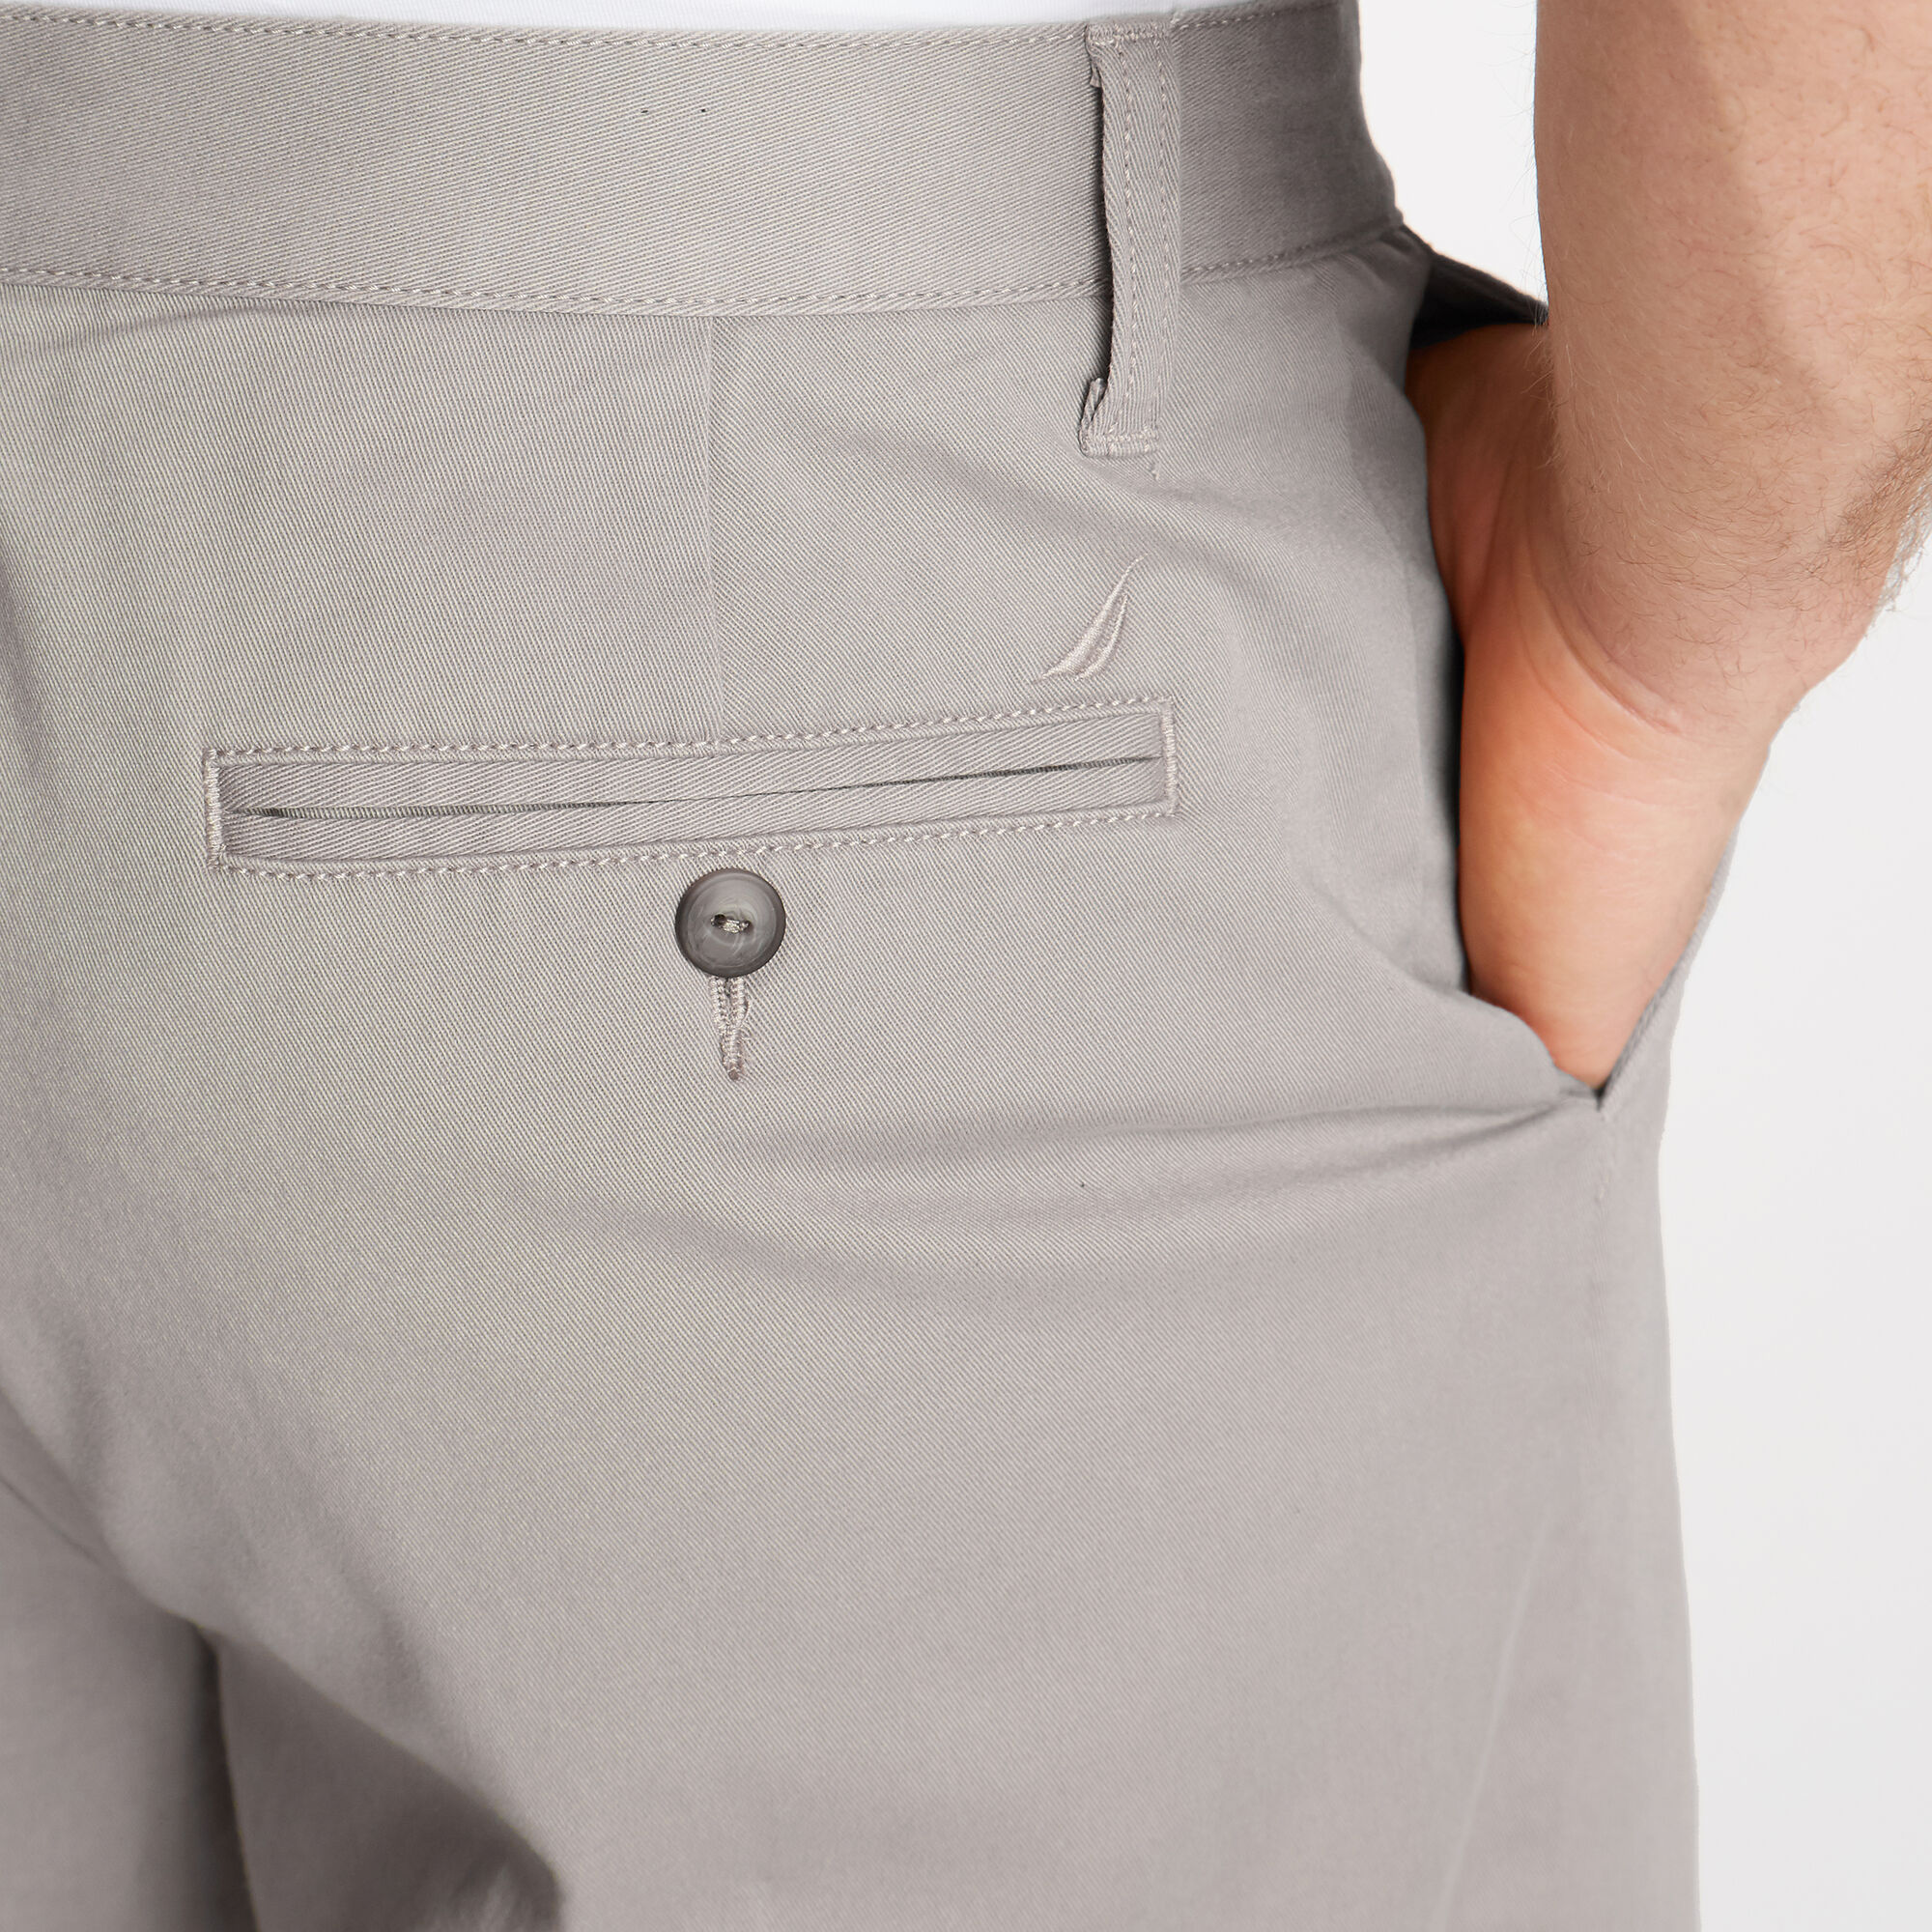 Nautica-Mens-10-034-Classic-Fit-Deck-Shorts-With-Stretch thumbnail 7